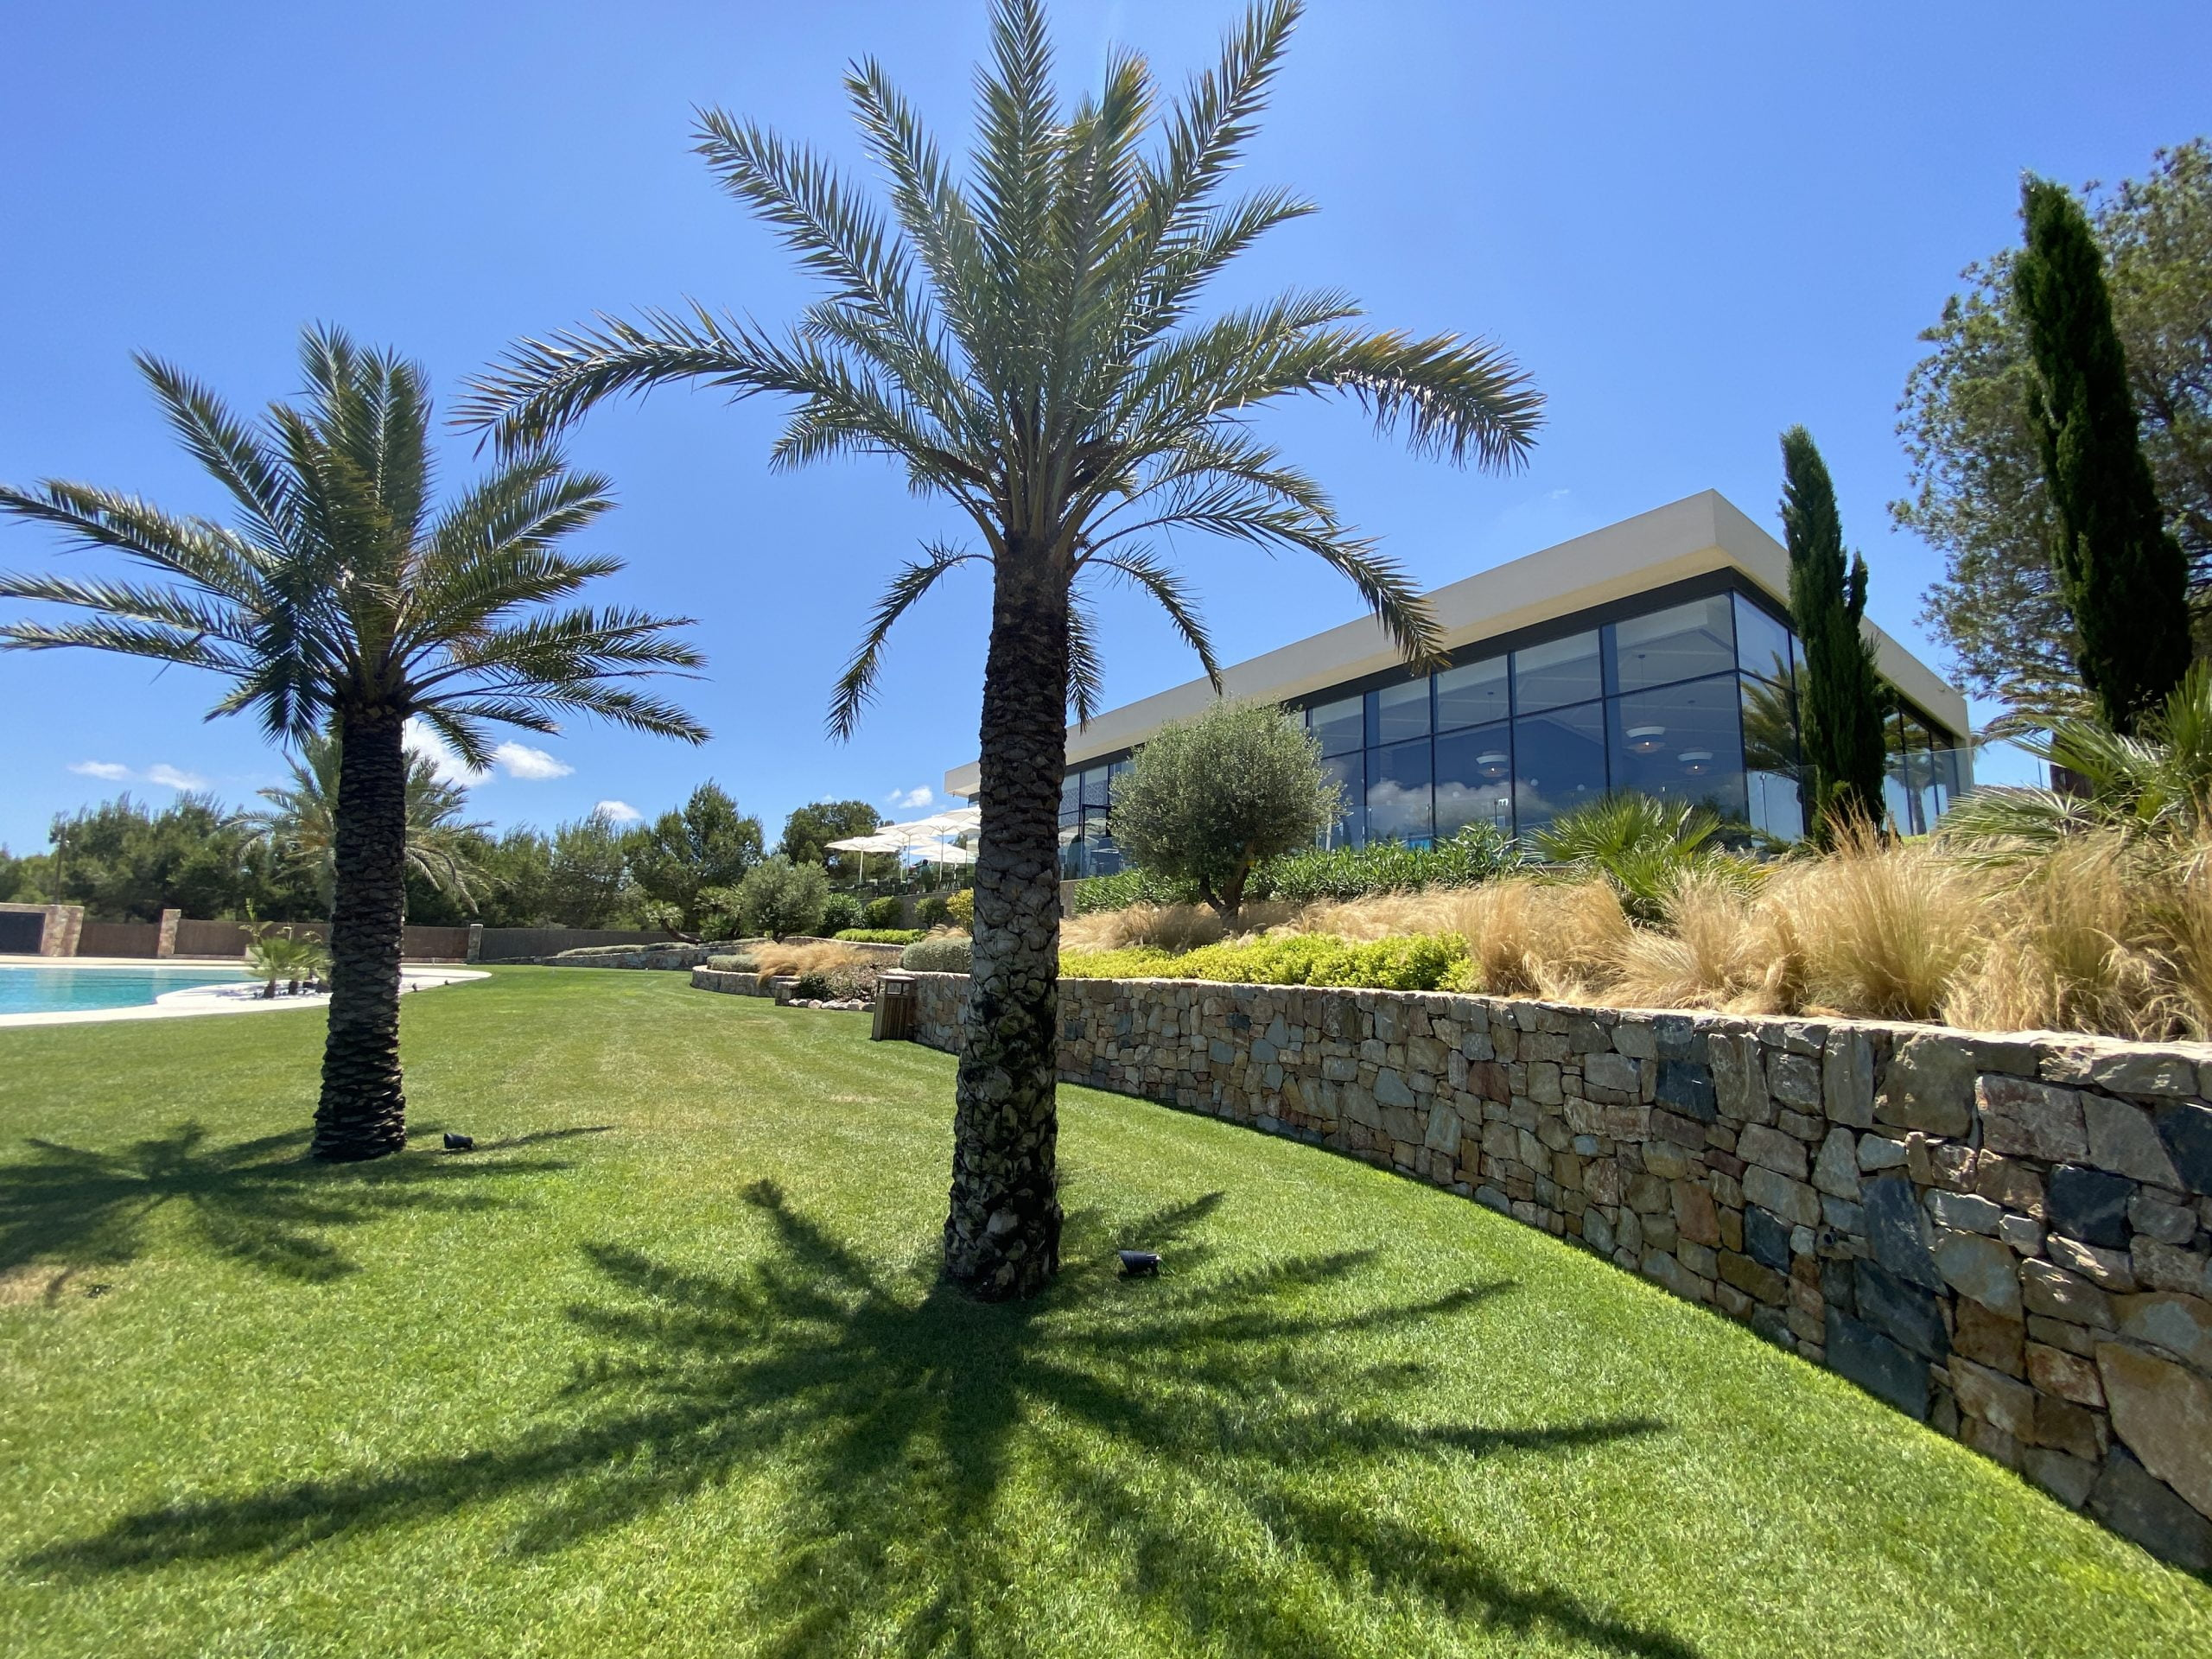 las colinas golf and country club - palm trees - las colinas property for sale